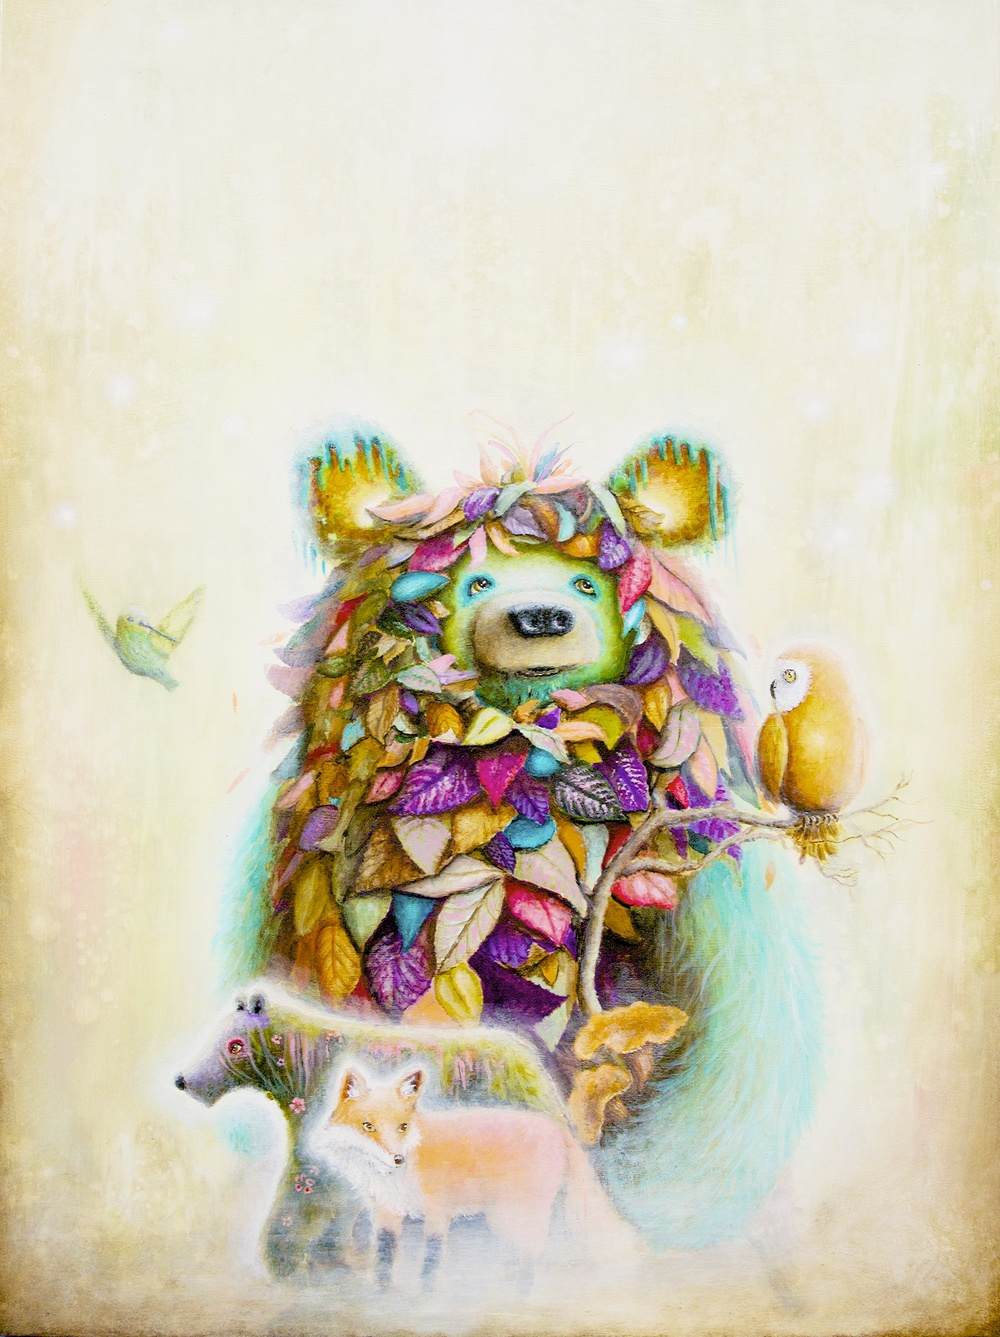 ScottMillsArt - Pop Surrealism - Surreal Art - Bear - Painting.jpg